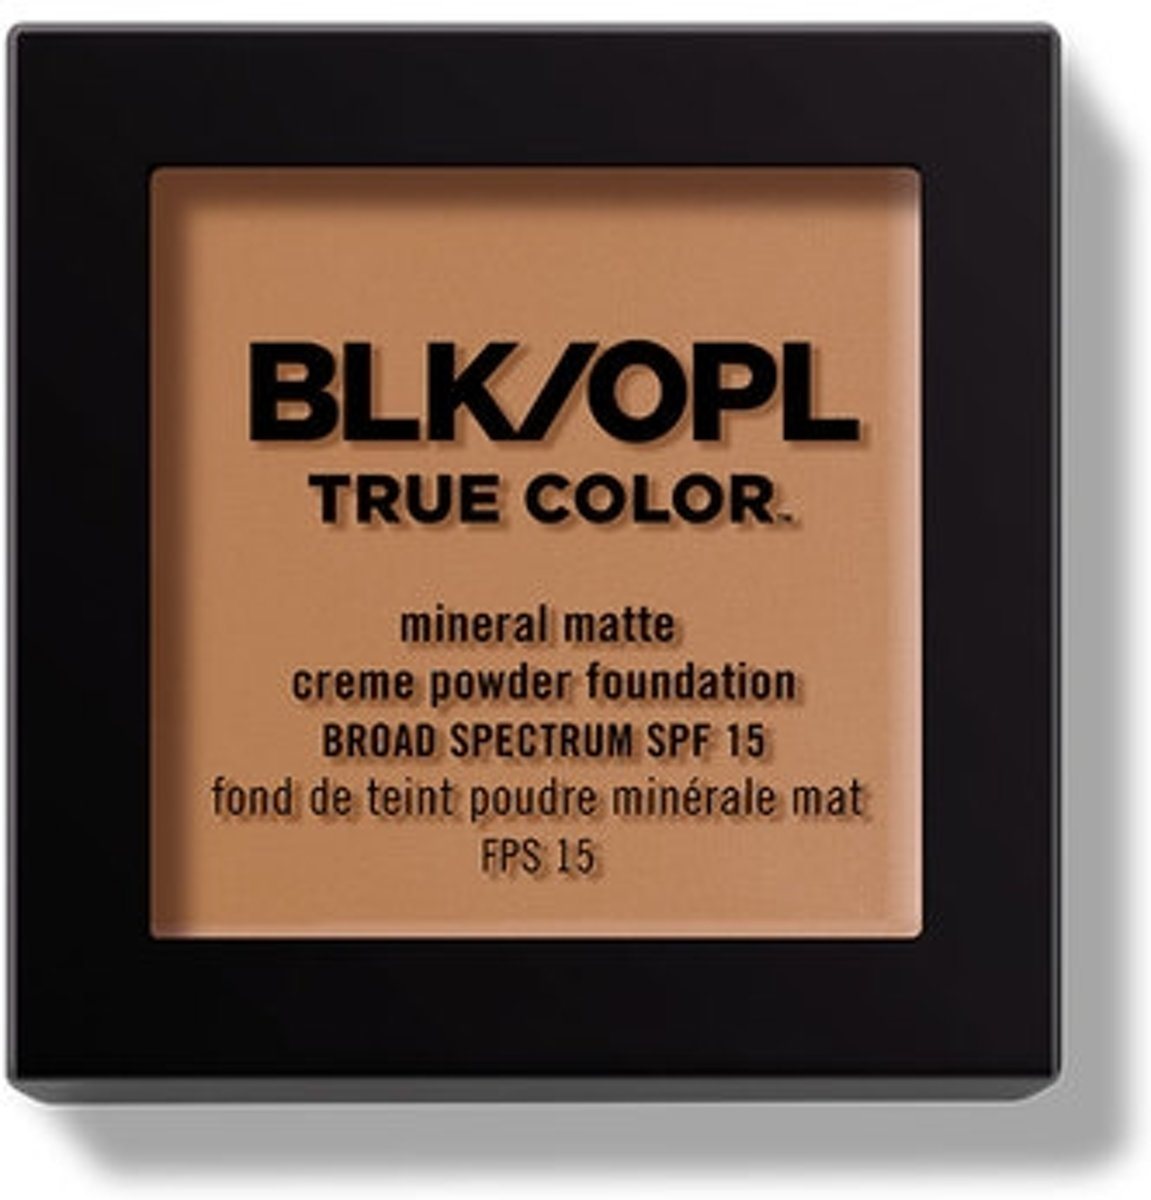 Black Opal True Color Mineral Matte Creme to Powder Foundation